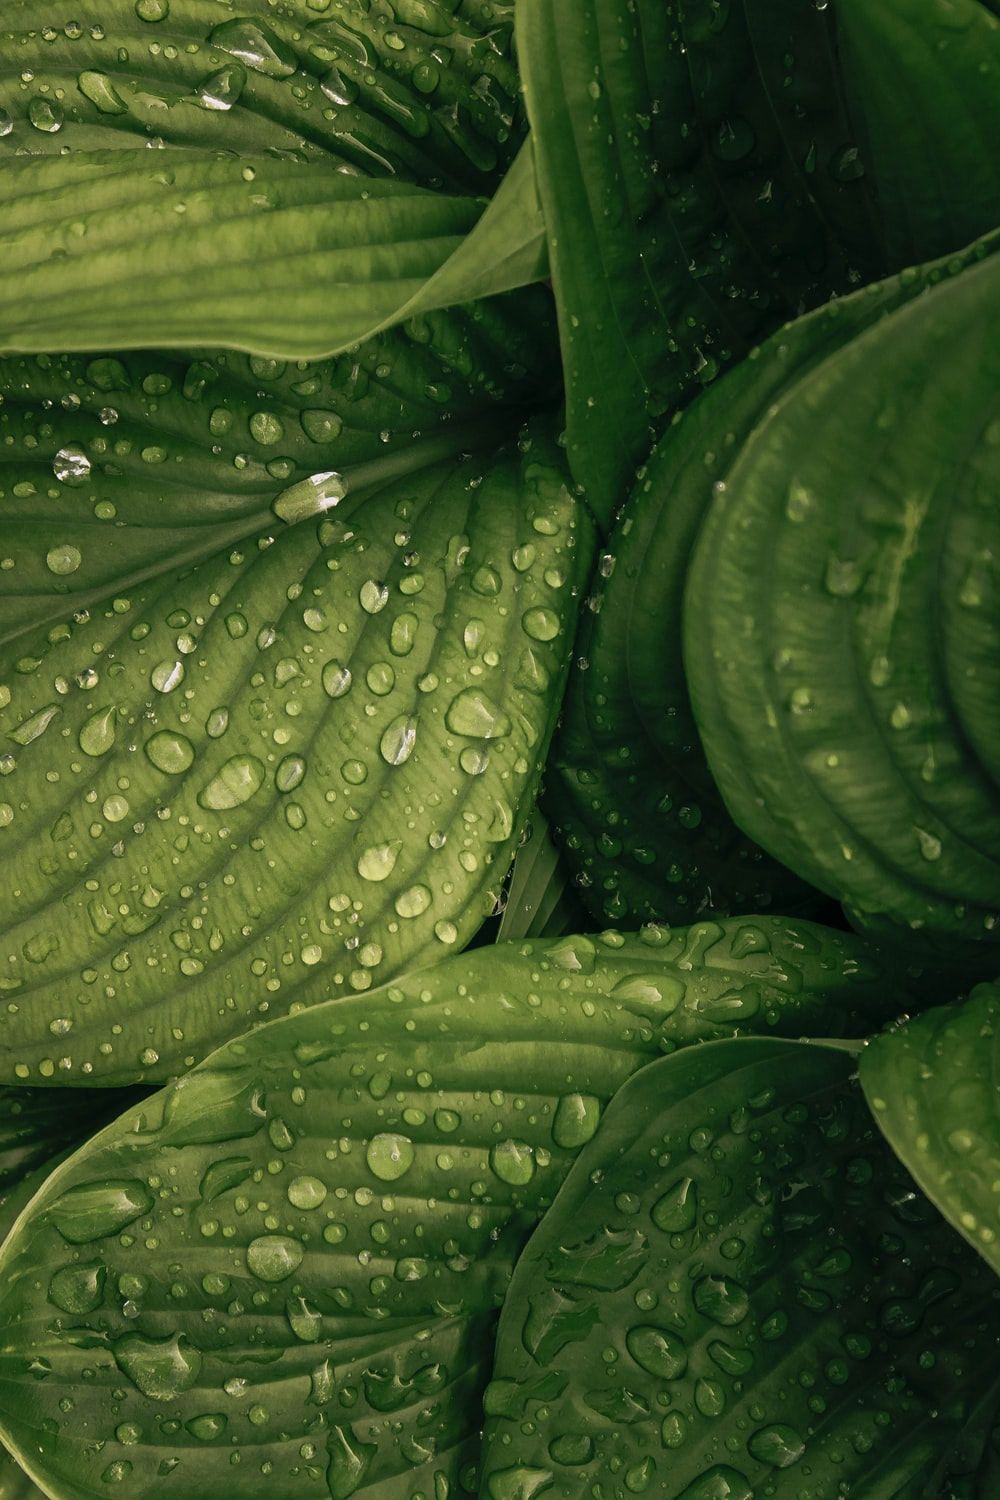 water drop on green plant